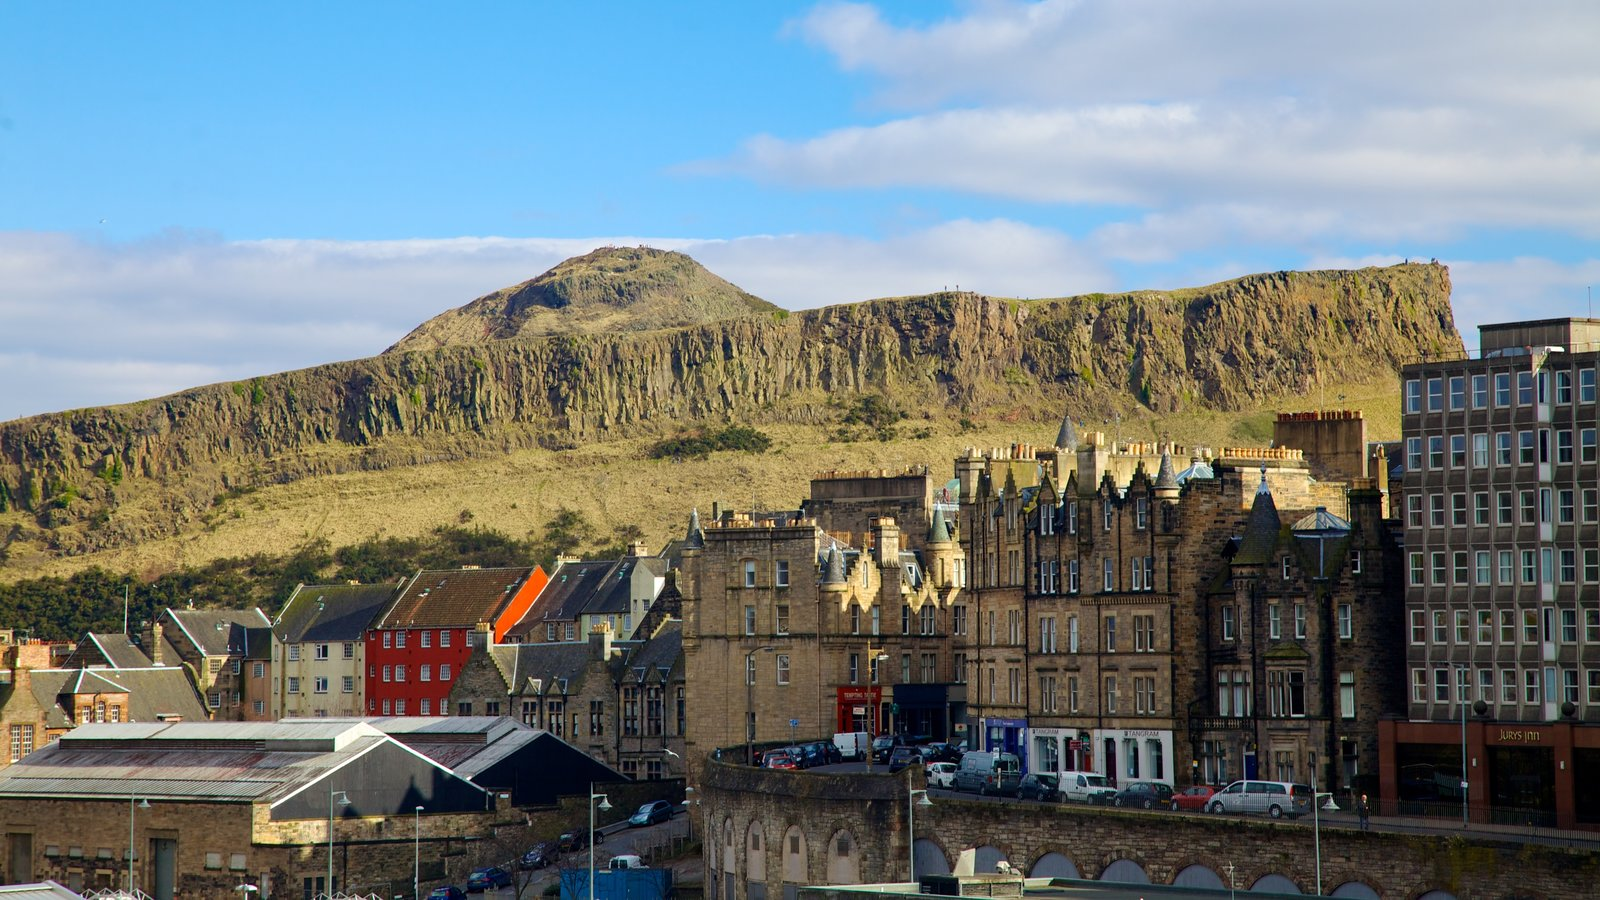 Arthur\'s Seat which includes mountains and a small town or village